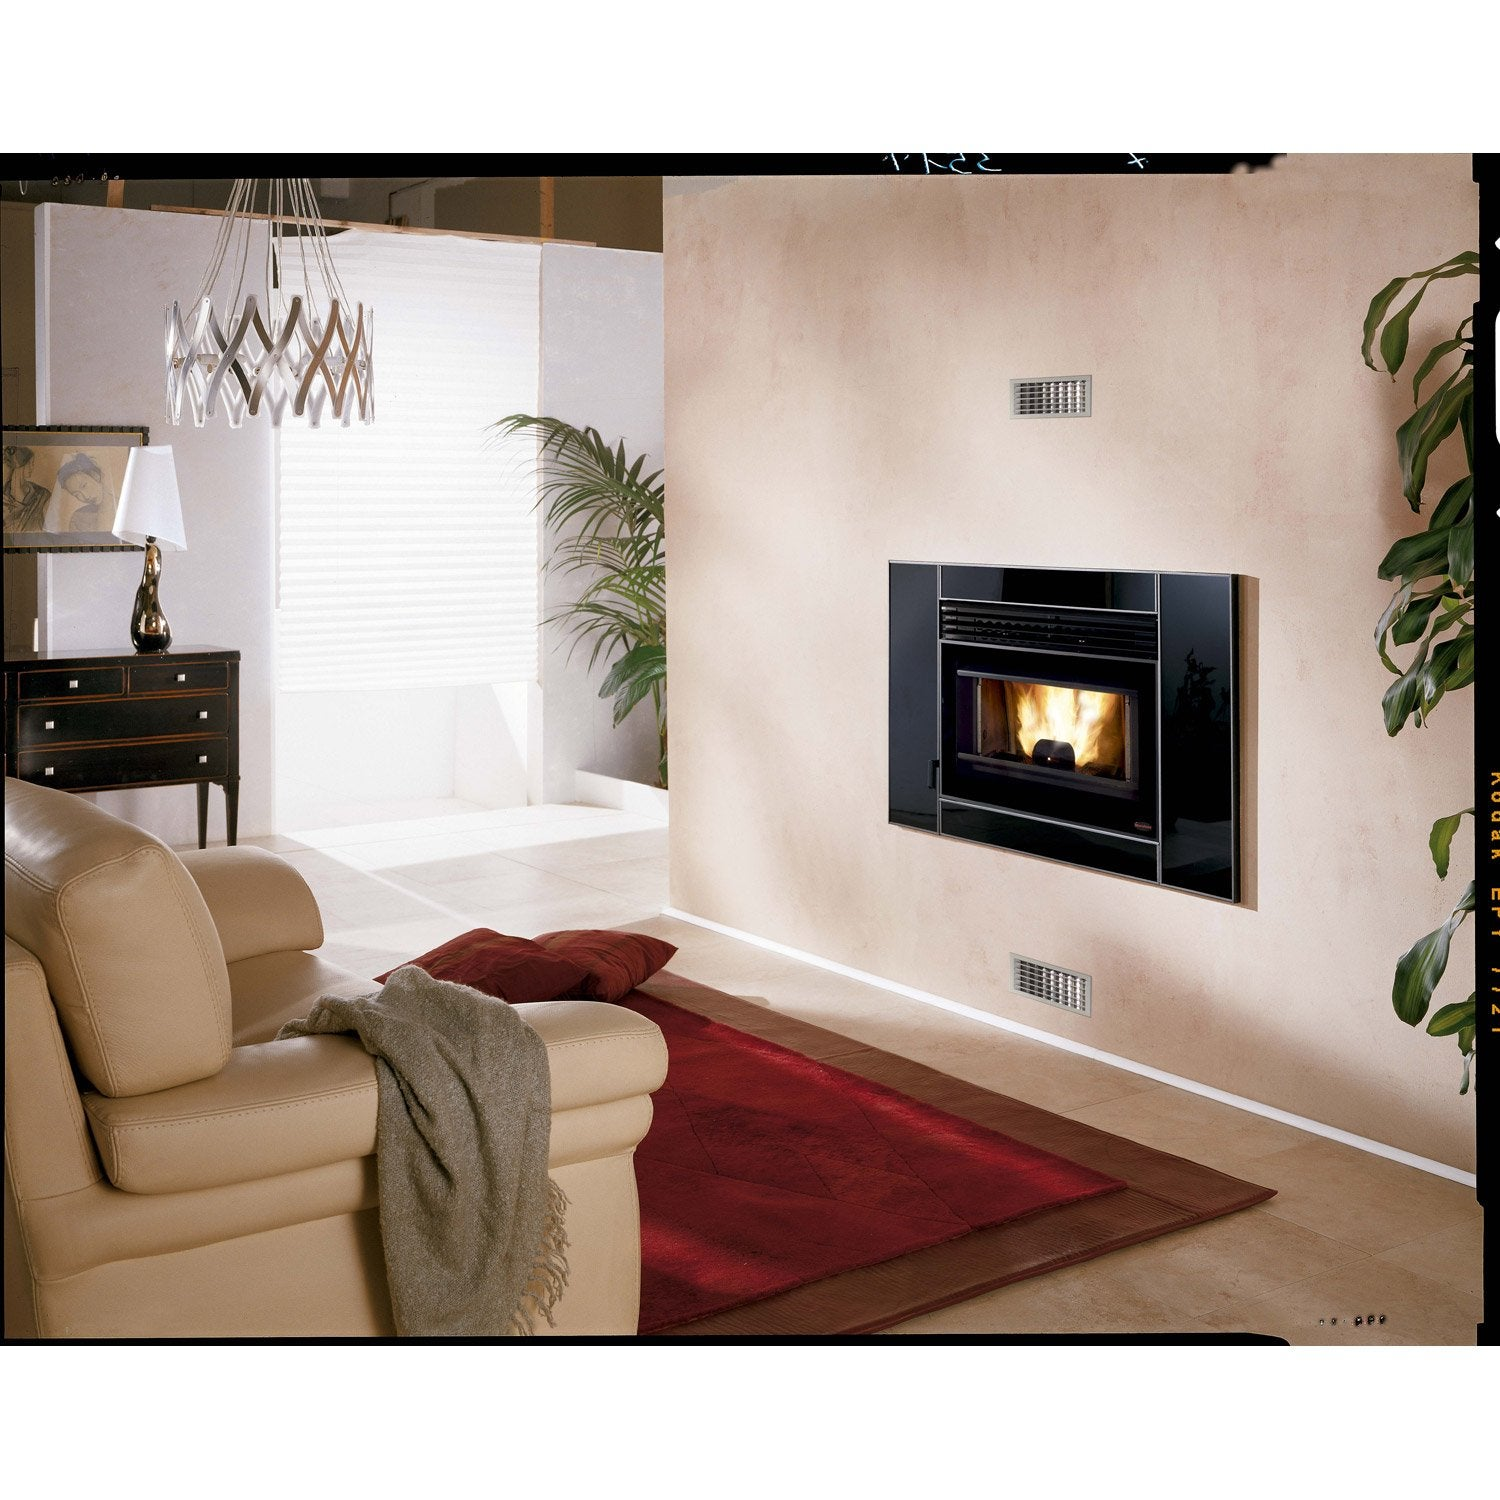 insert granul s autonome extraflame comfort p80 7 kw leroy merlin. Black Bedroom Furniture Sets. Home Design Ideas